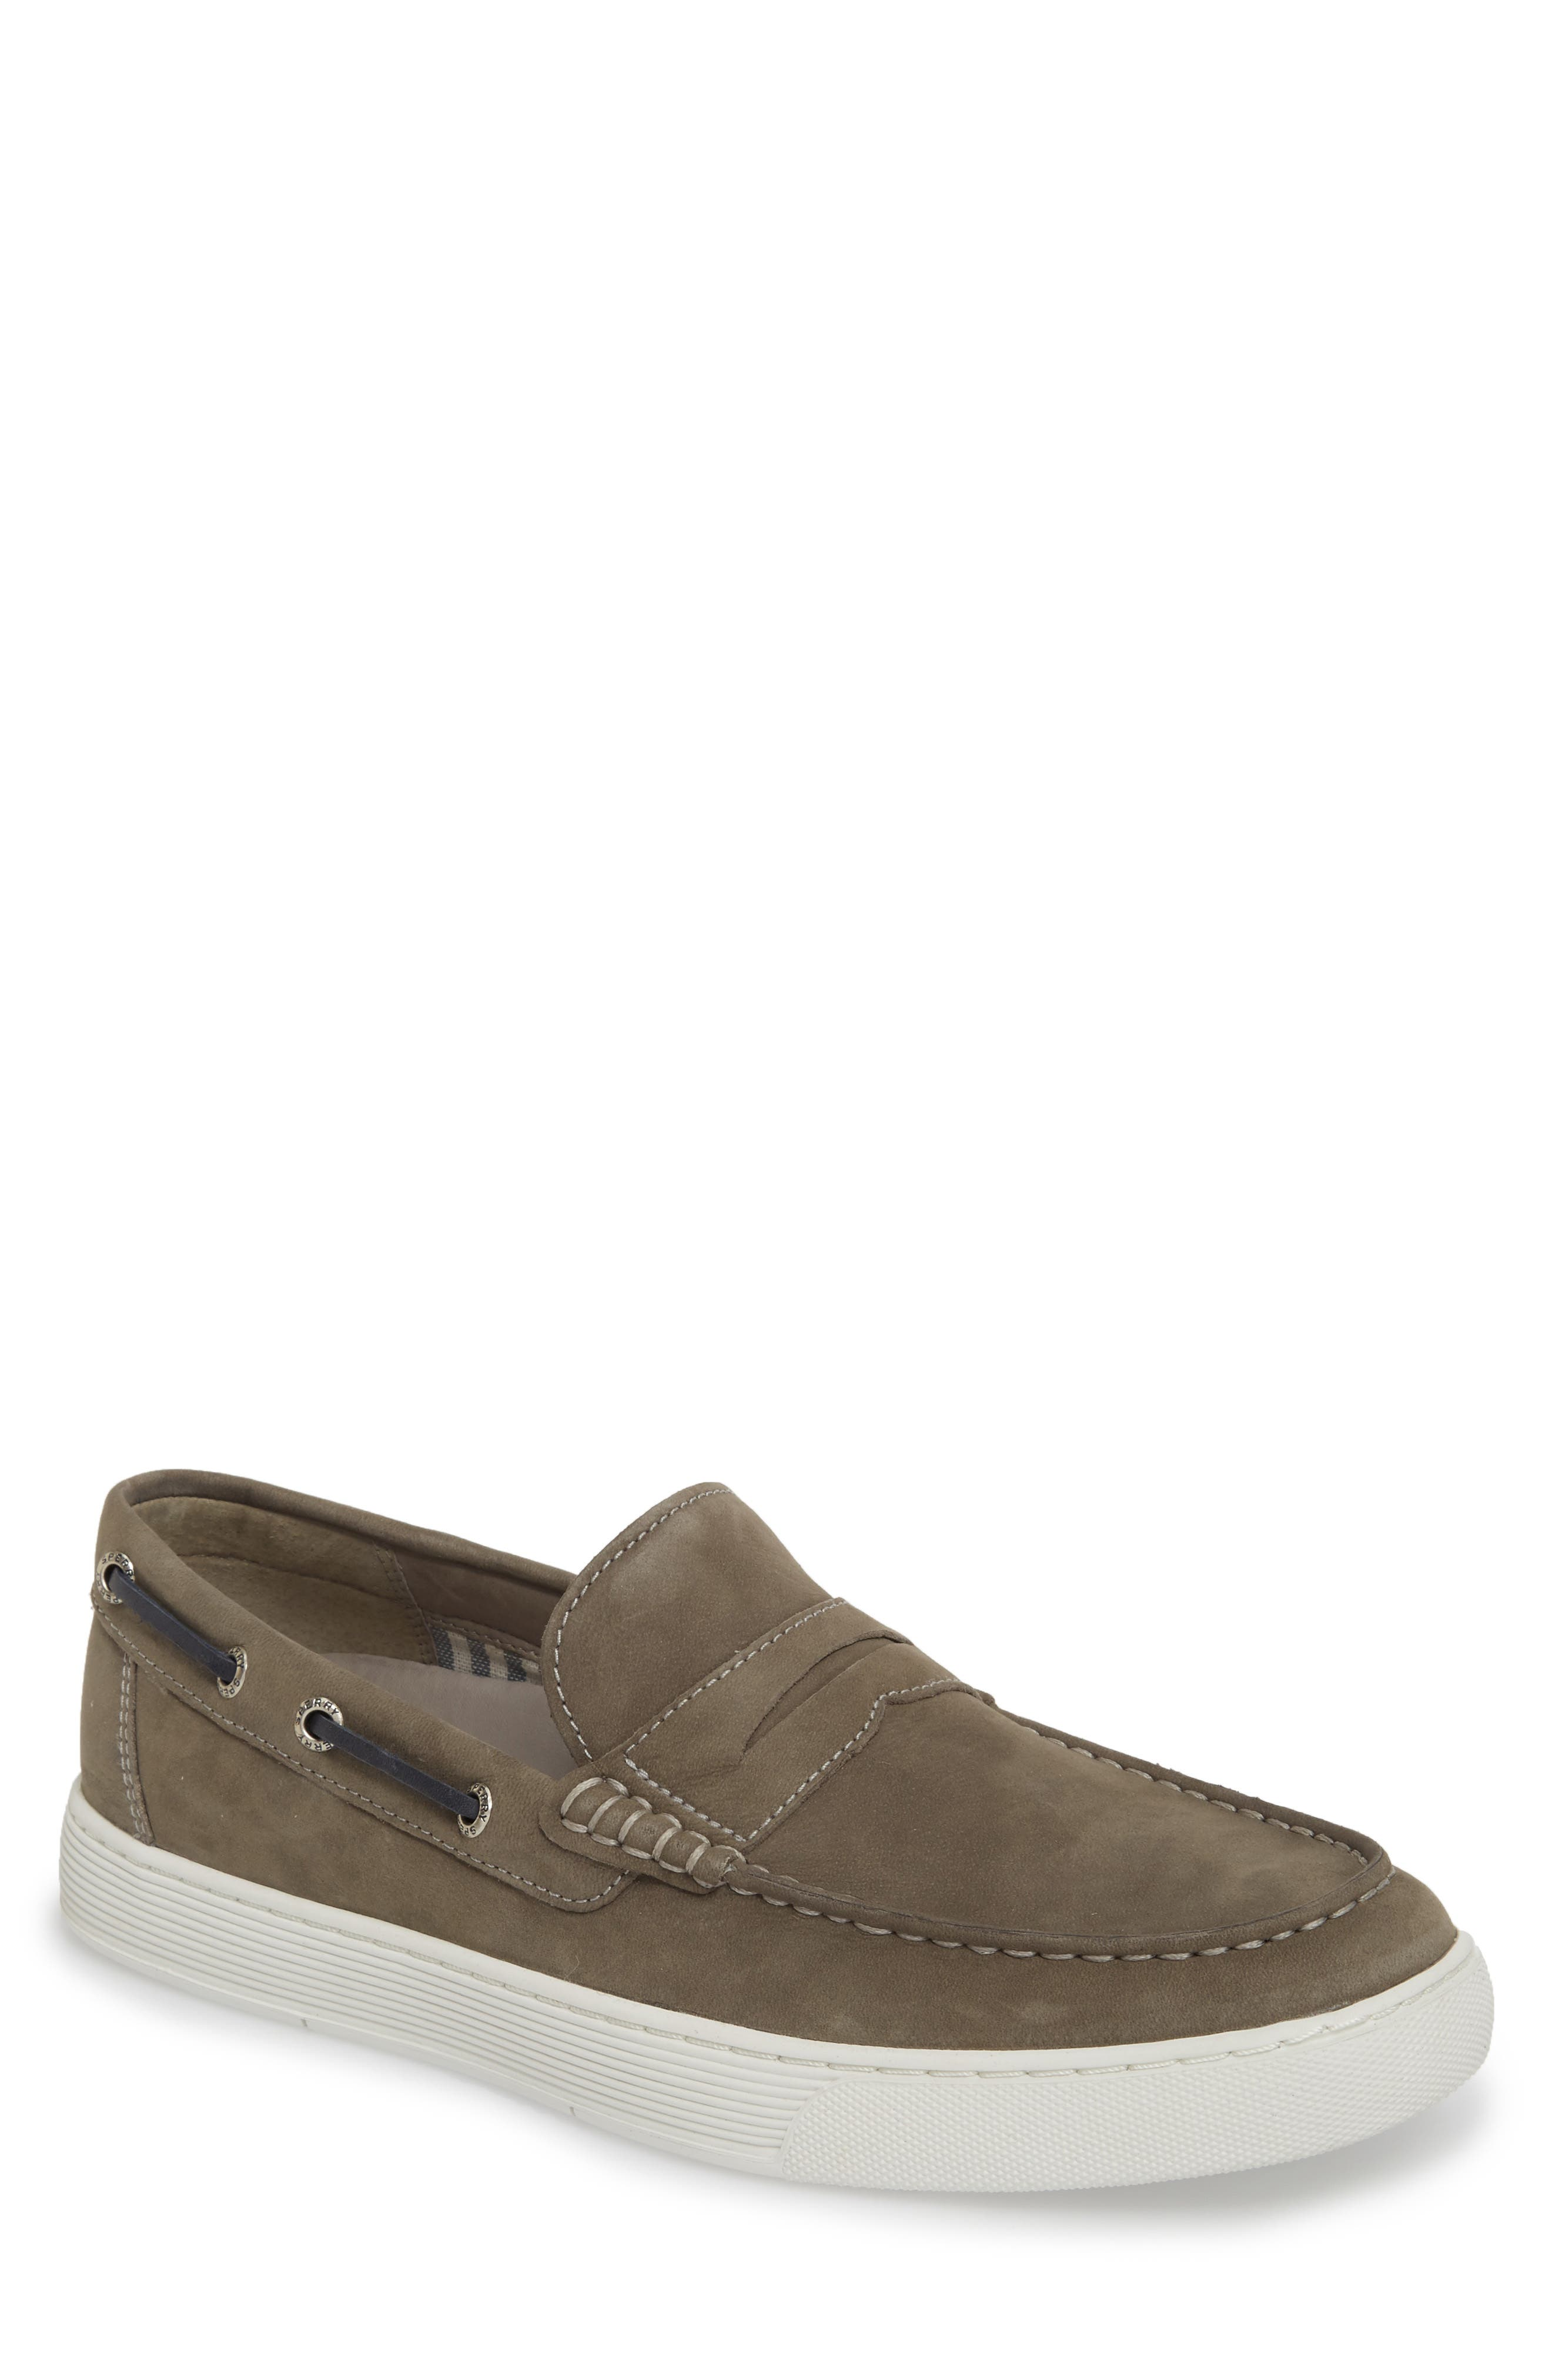 Gold Cup Penny Loafer,                         Main,                         color, 020